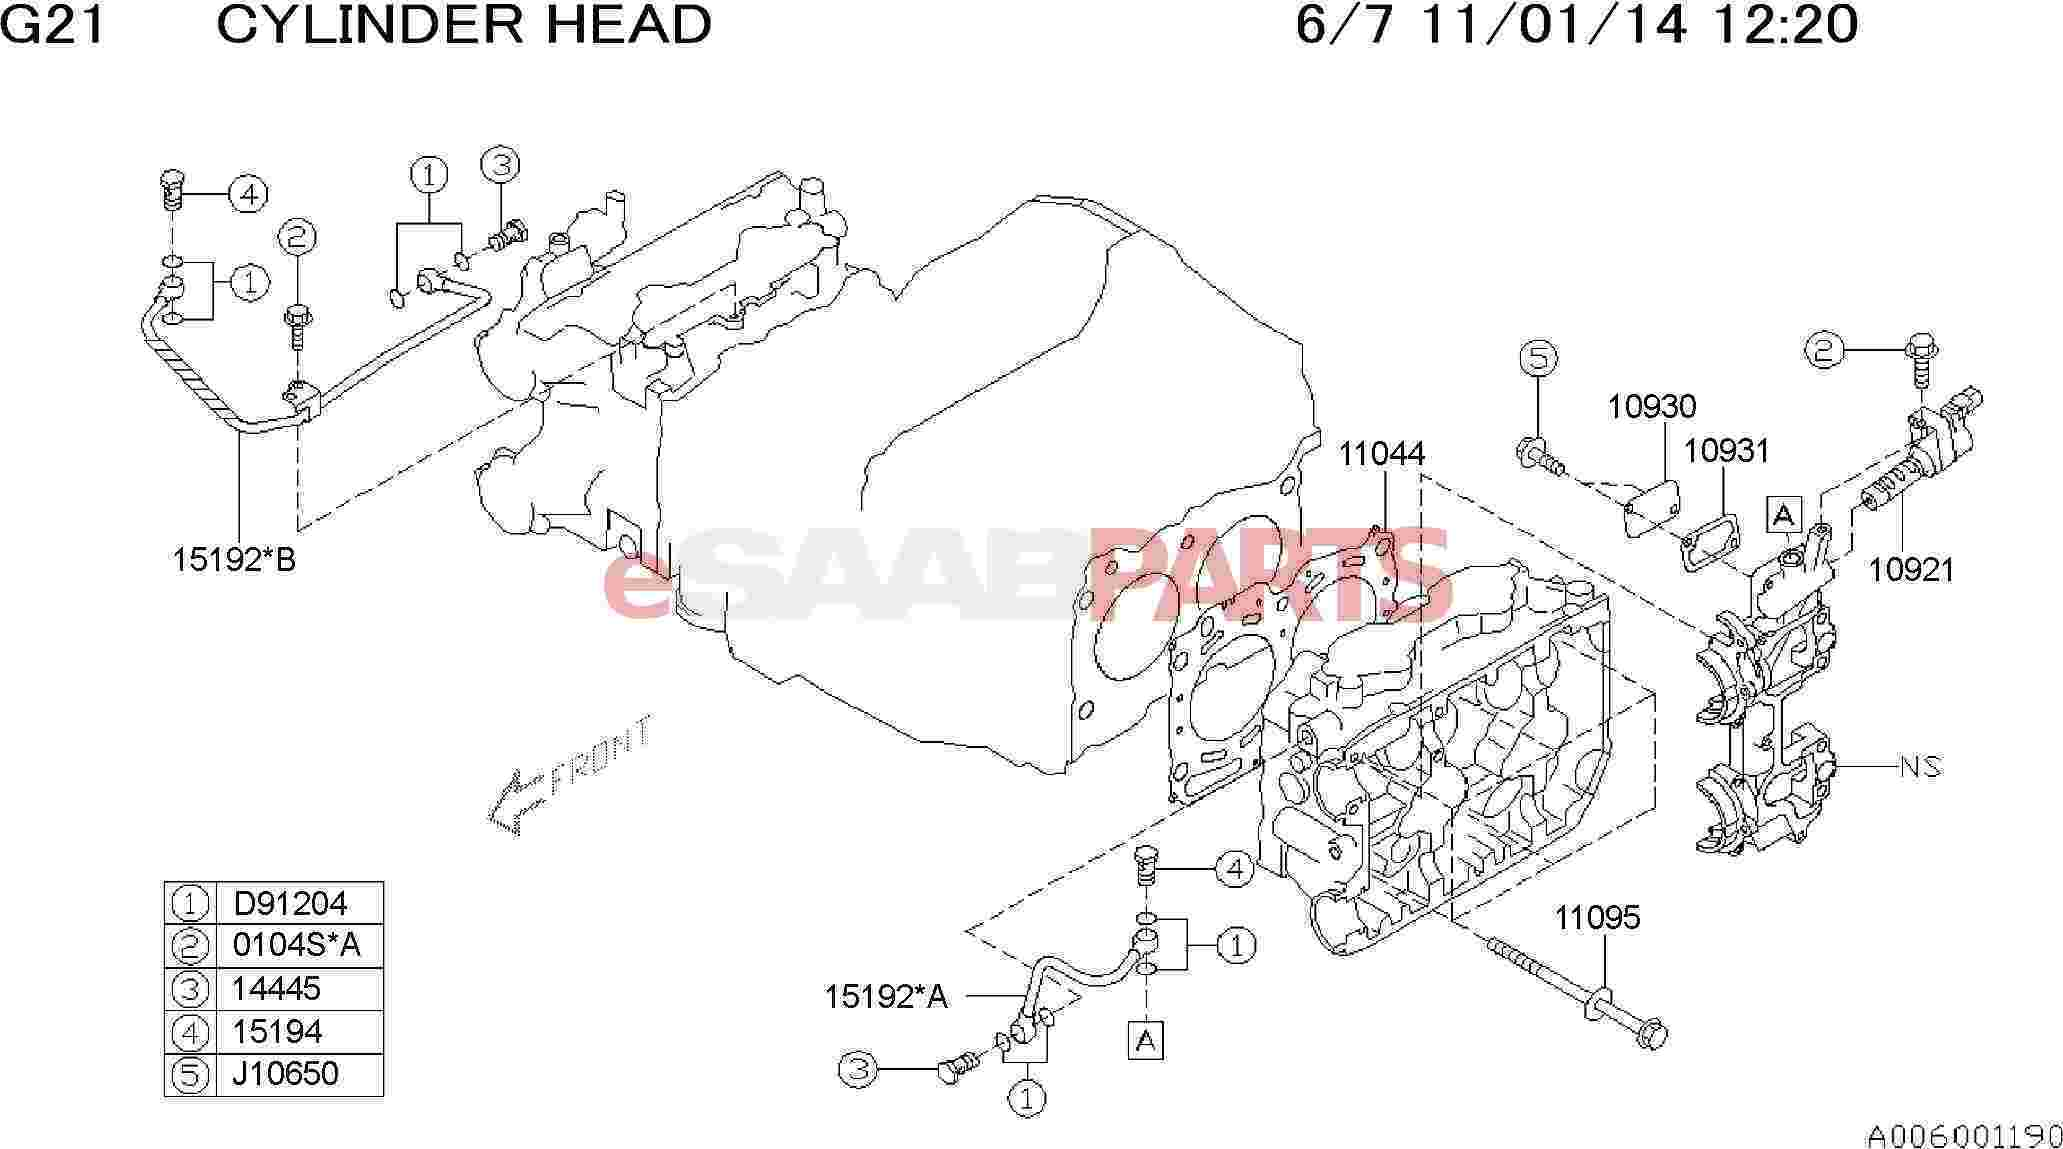 ej205 head diagram  diagram  auto wiring diagram